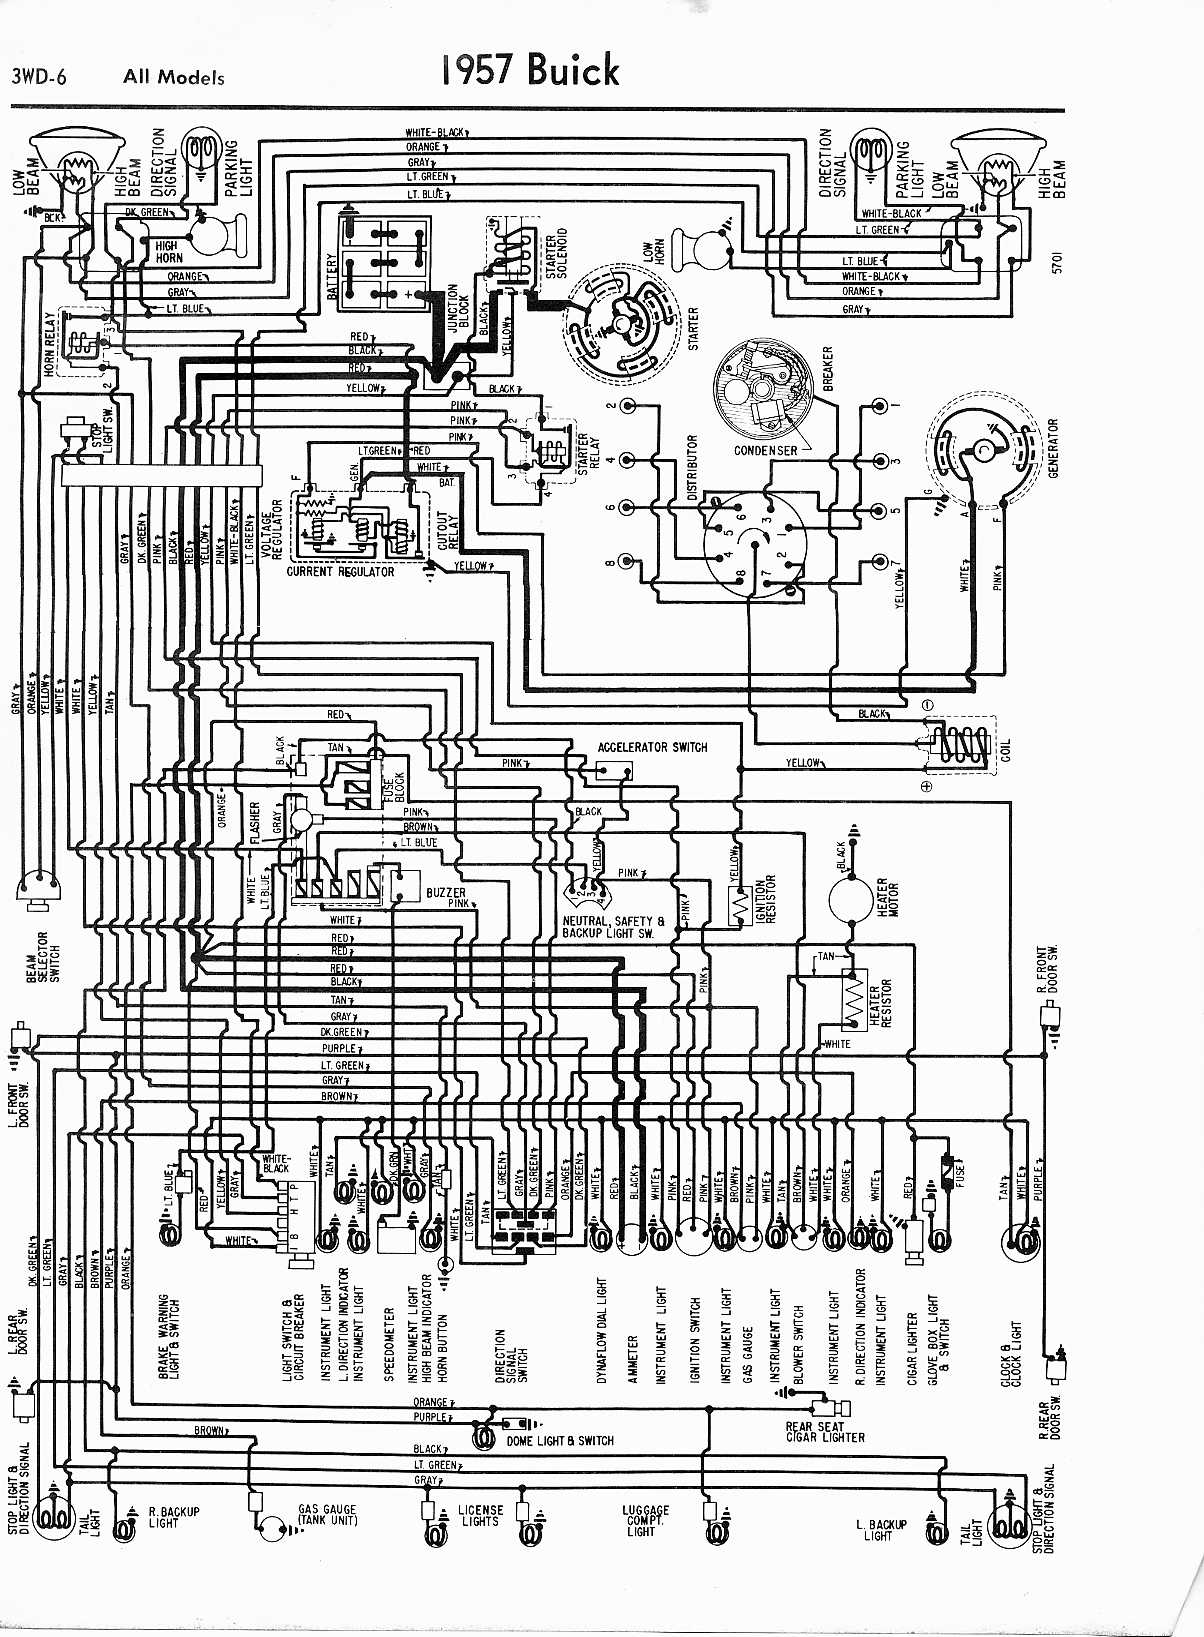 5e481 1990 Mini Cooper Wiring Diagram